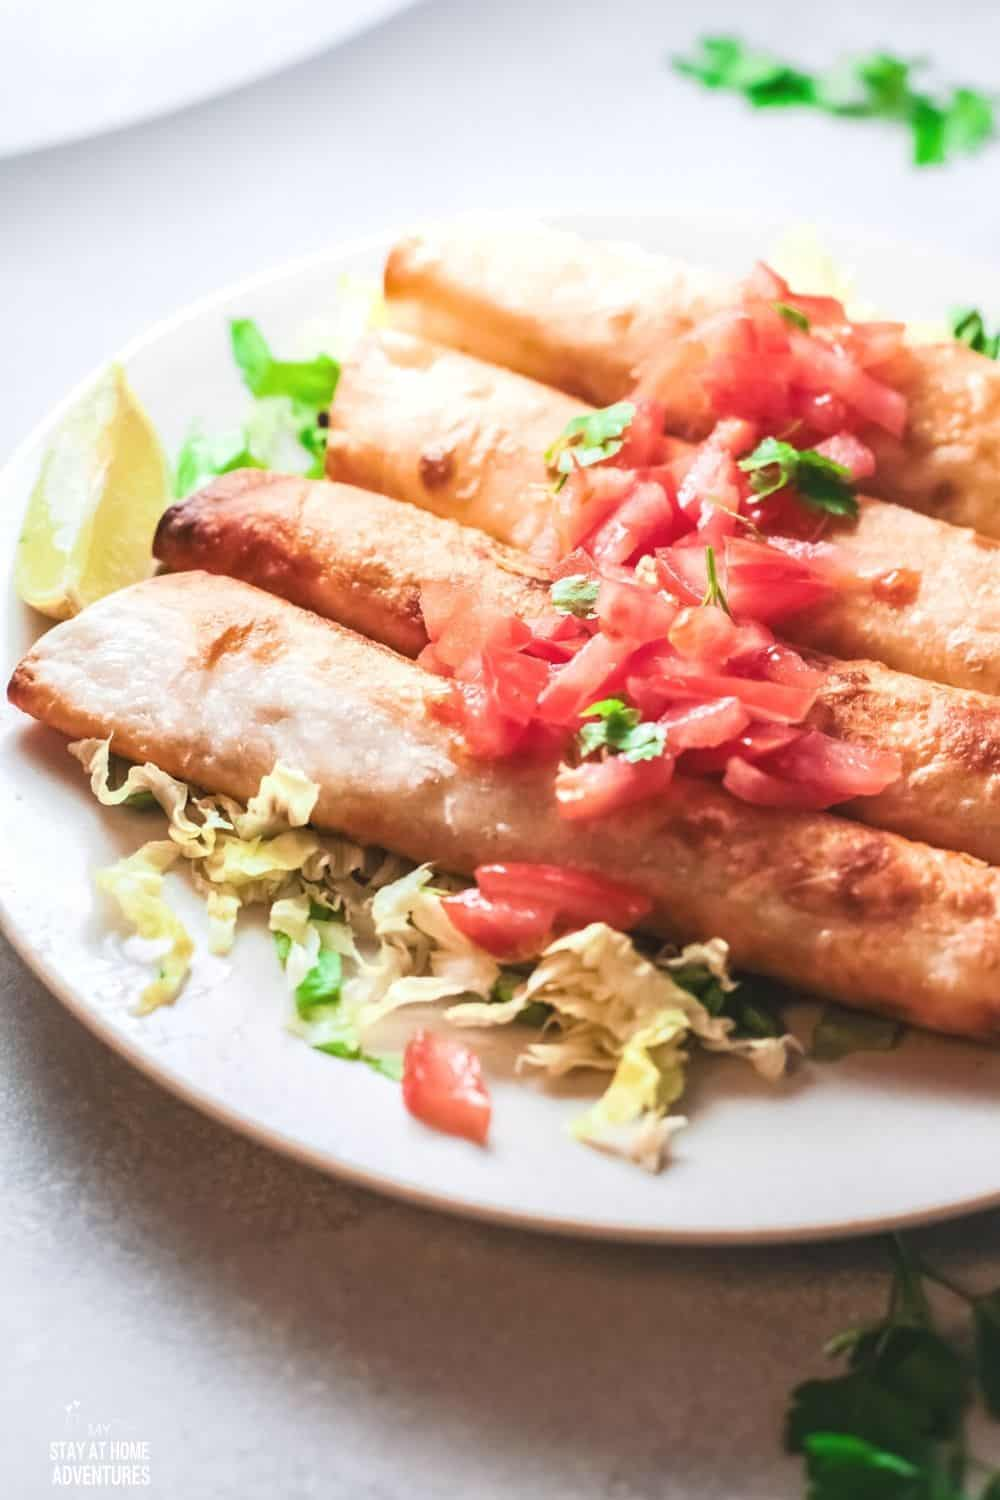 Learn how to create these mouthwatering Rolled Tacos (Taquitos) made with chicken breast and freezer-friendly. #rolledtacos #taquitos via @mystayathome